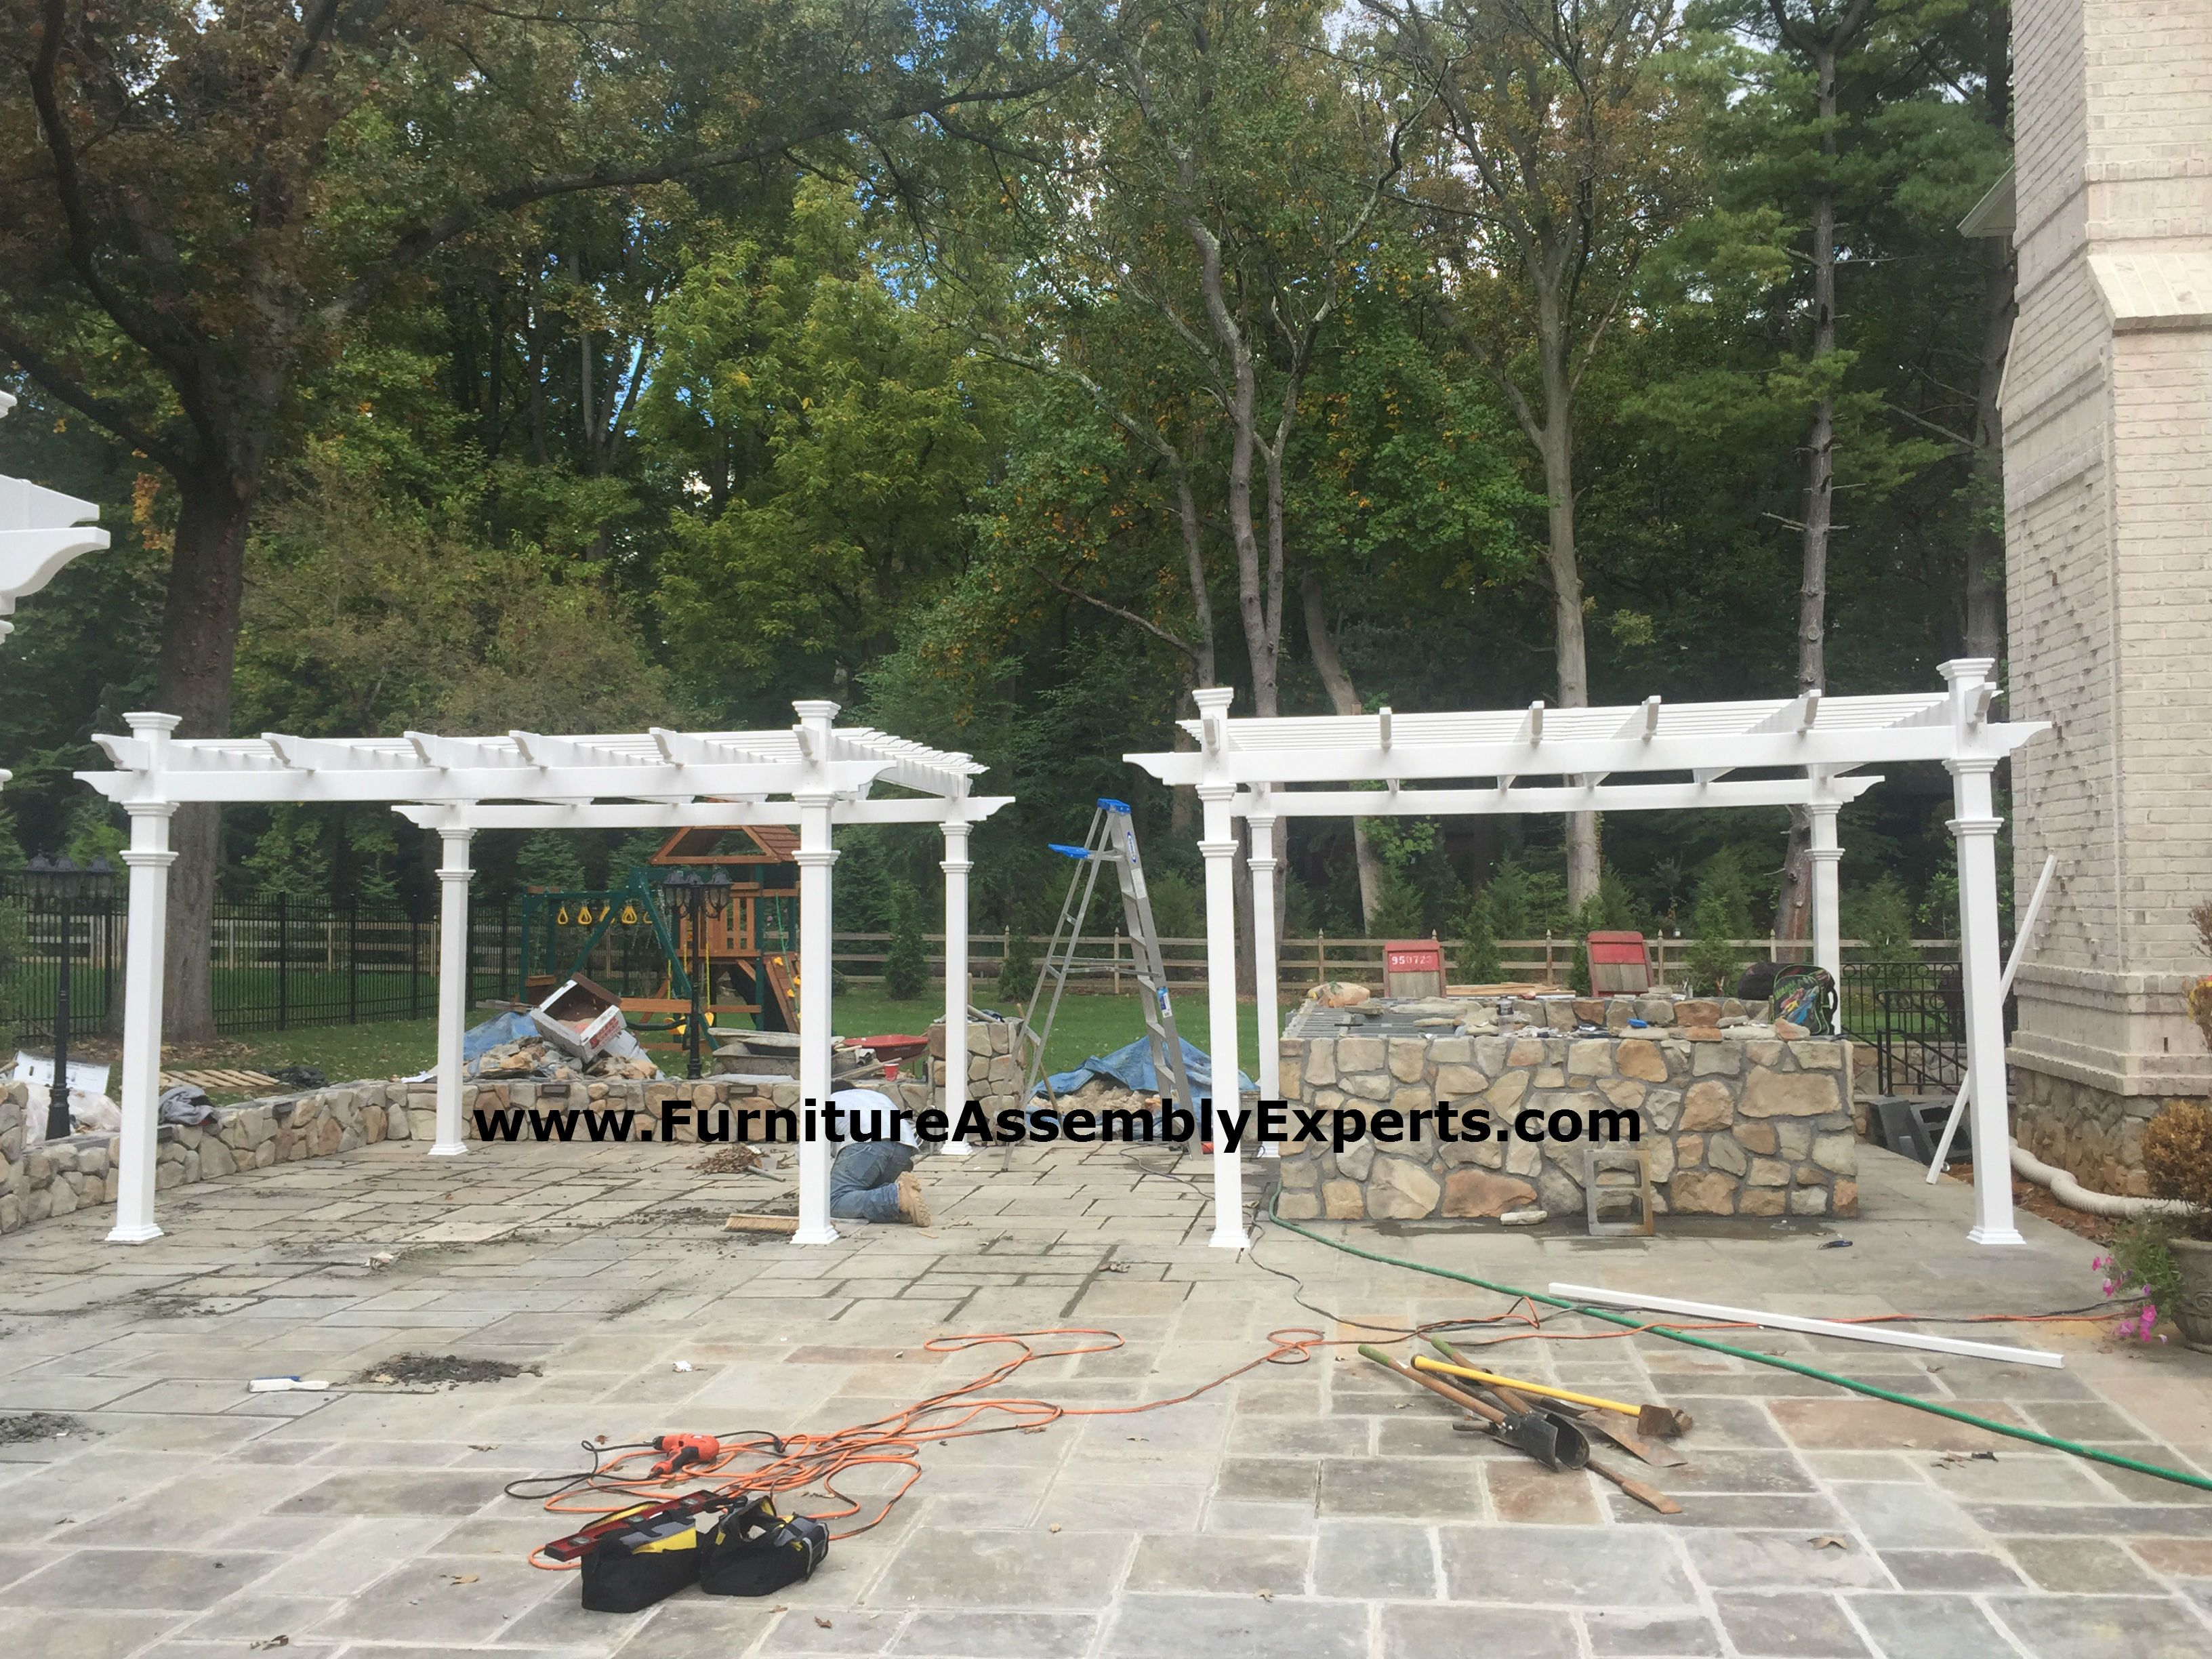 Pergola Embled For A Customer At His Home In Ellicott City Md By Furniture Embly Experts